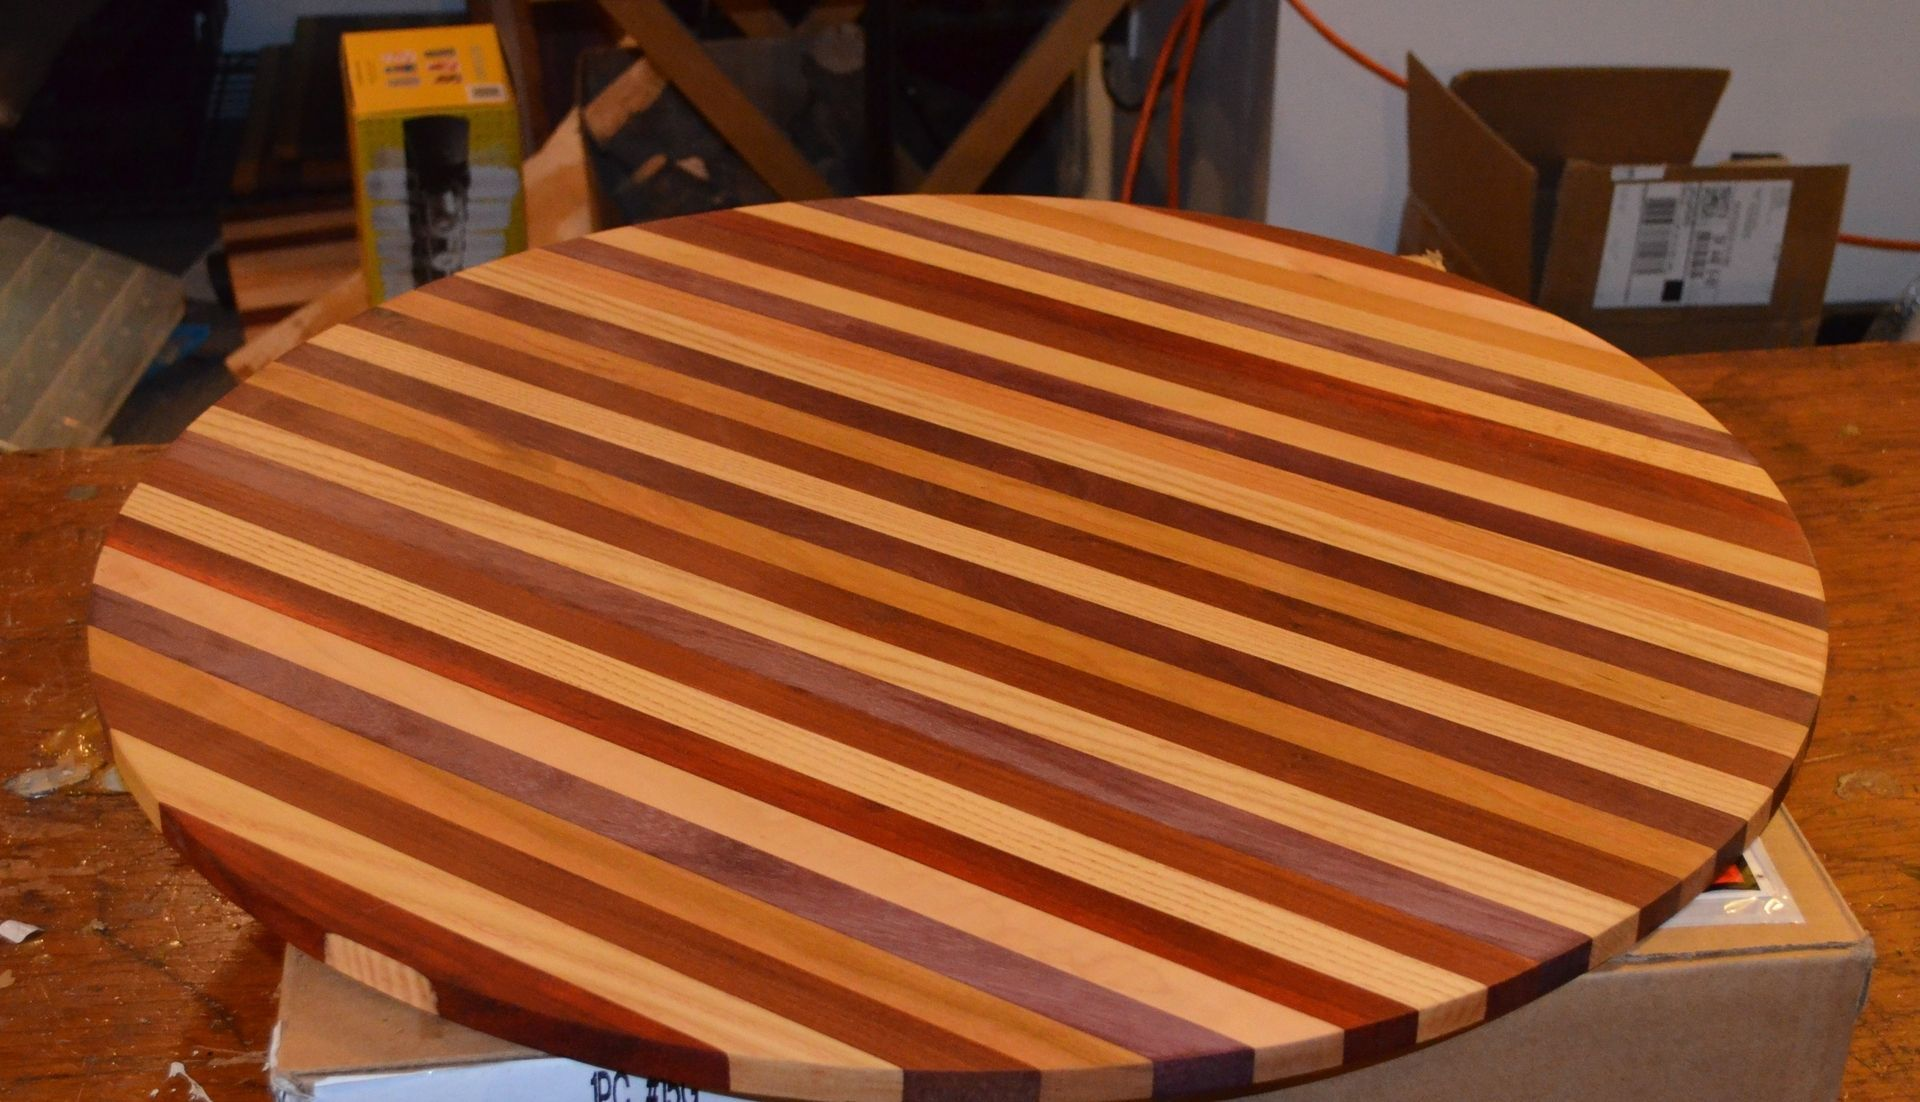 Miraculous Custom Made Butcher Block Table Top For Wine Barrel Dining Download Free Architecture Designs Embacsunscenecom